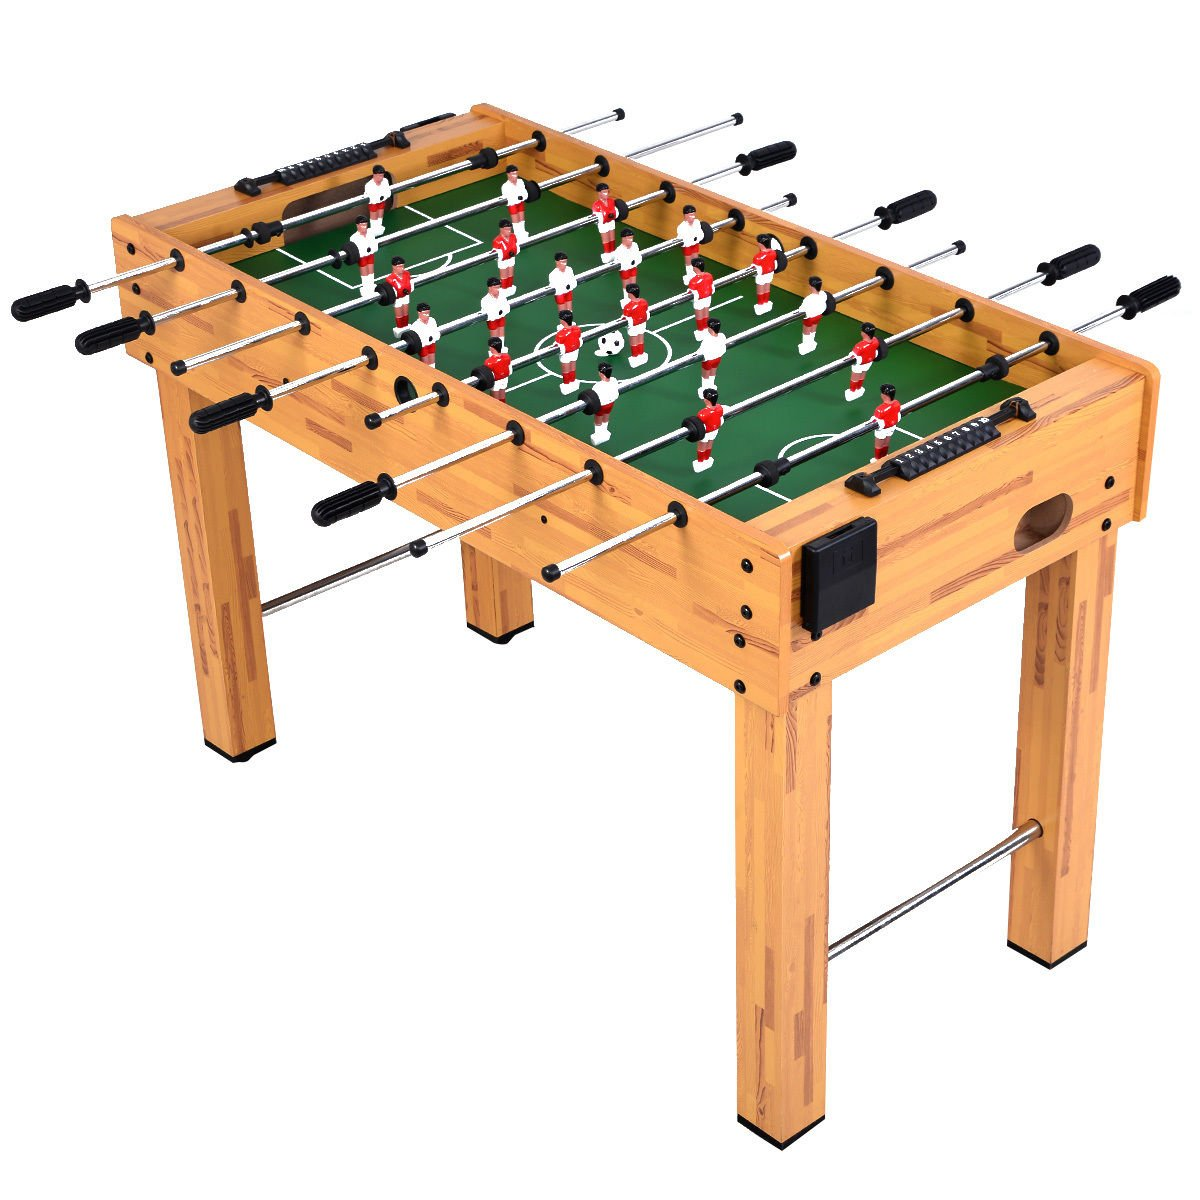 48'' Soccer Table Competition Foosball Arcade Sport Game Size w/ 2 Balls